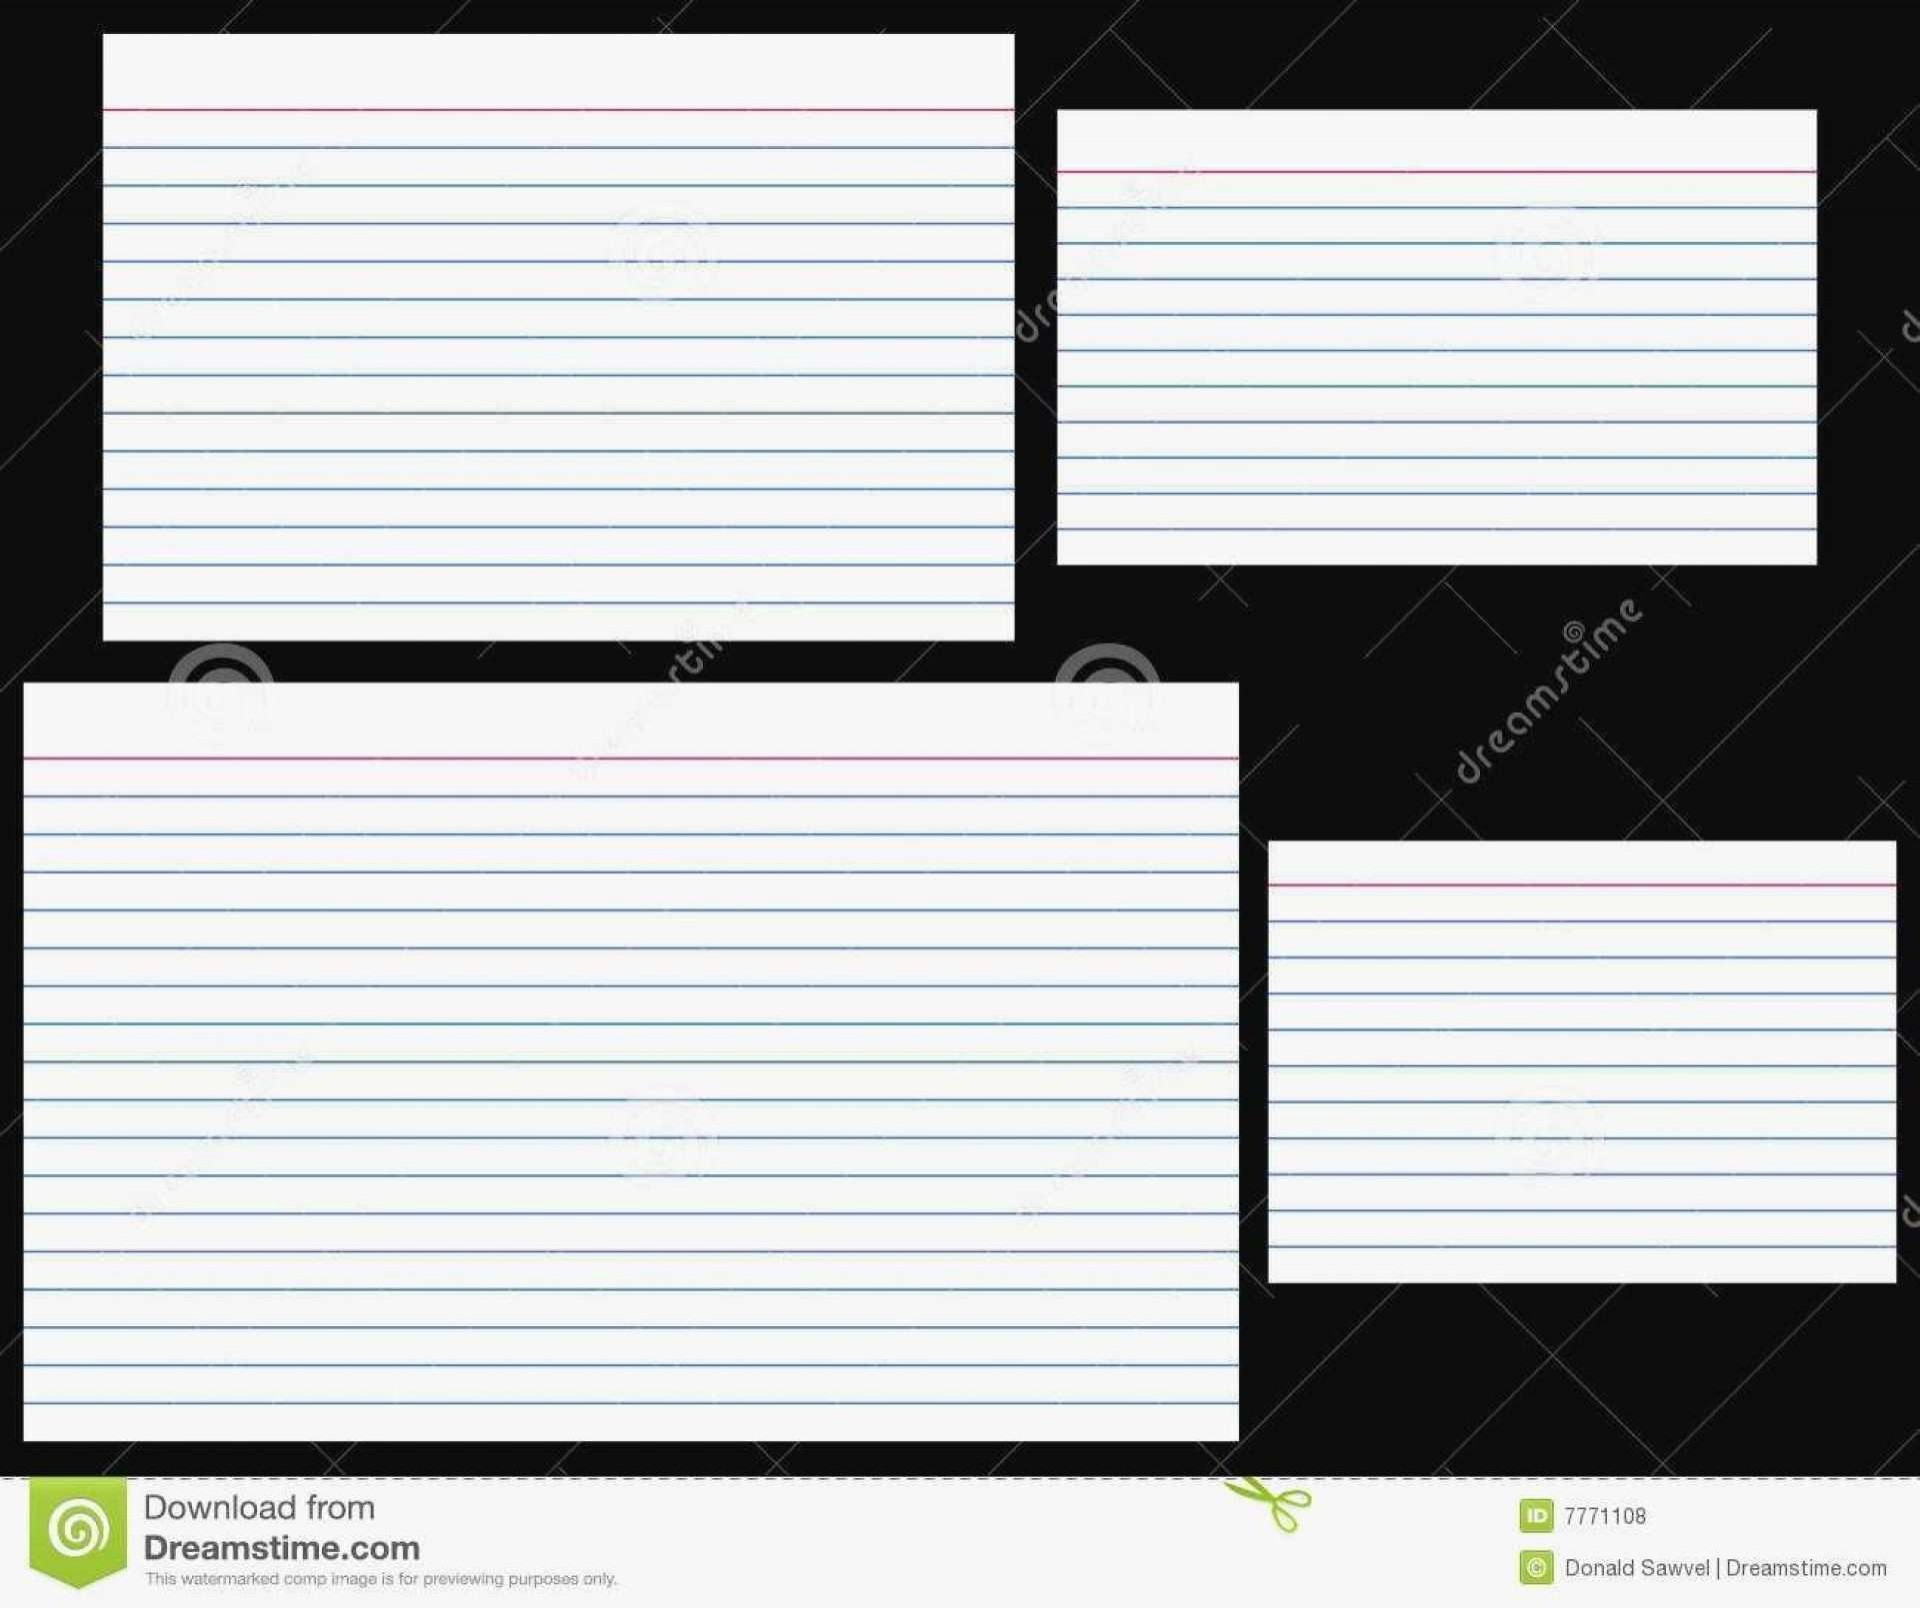 004 Exceptional Free Index Card Template High Def  Printable Editable1920